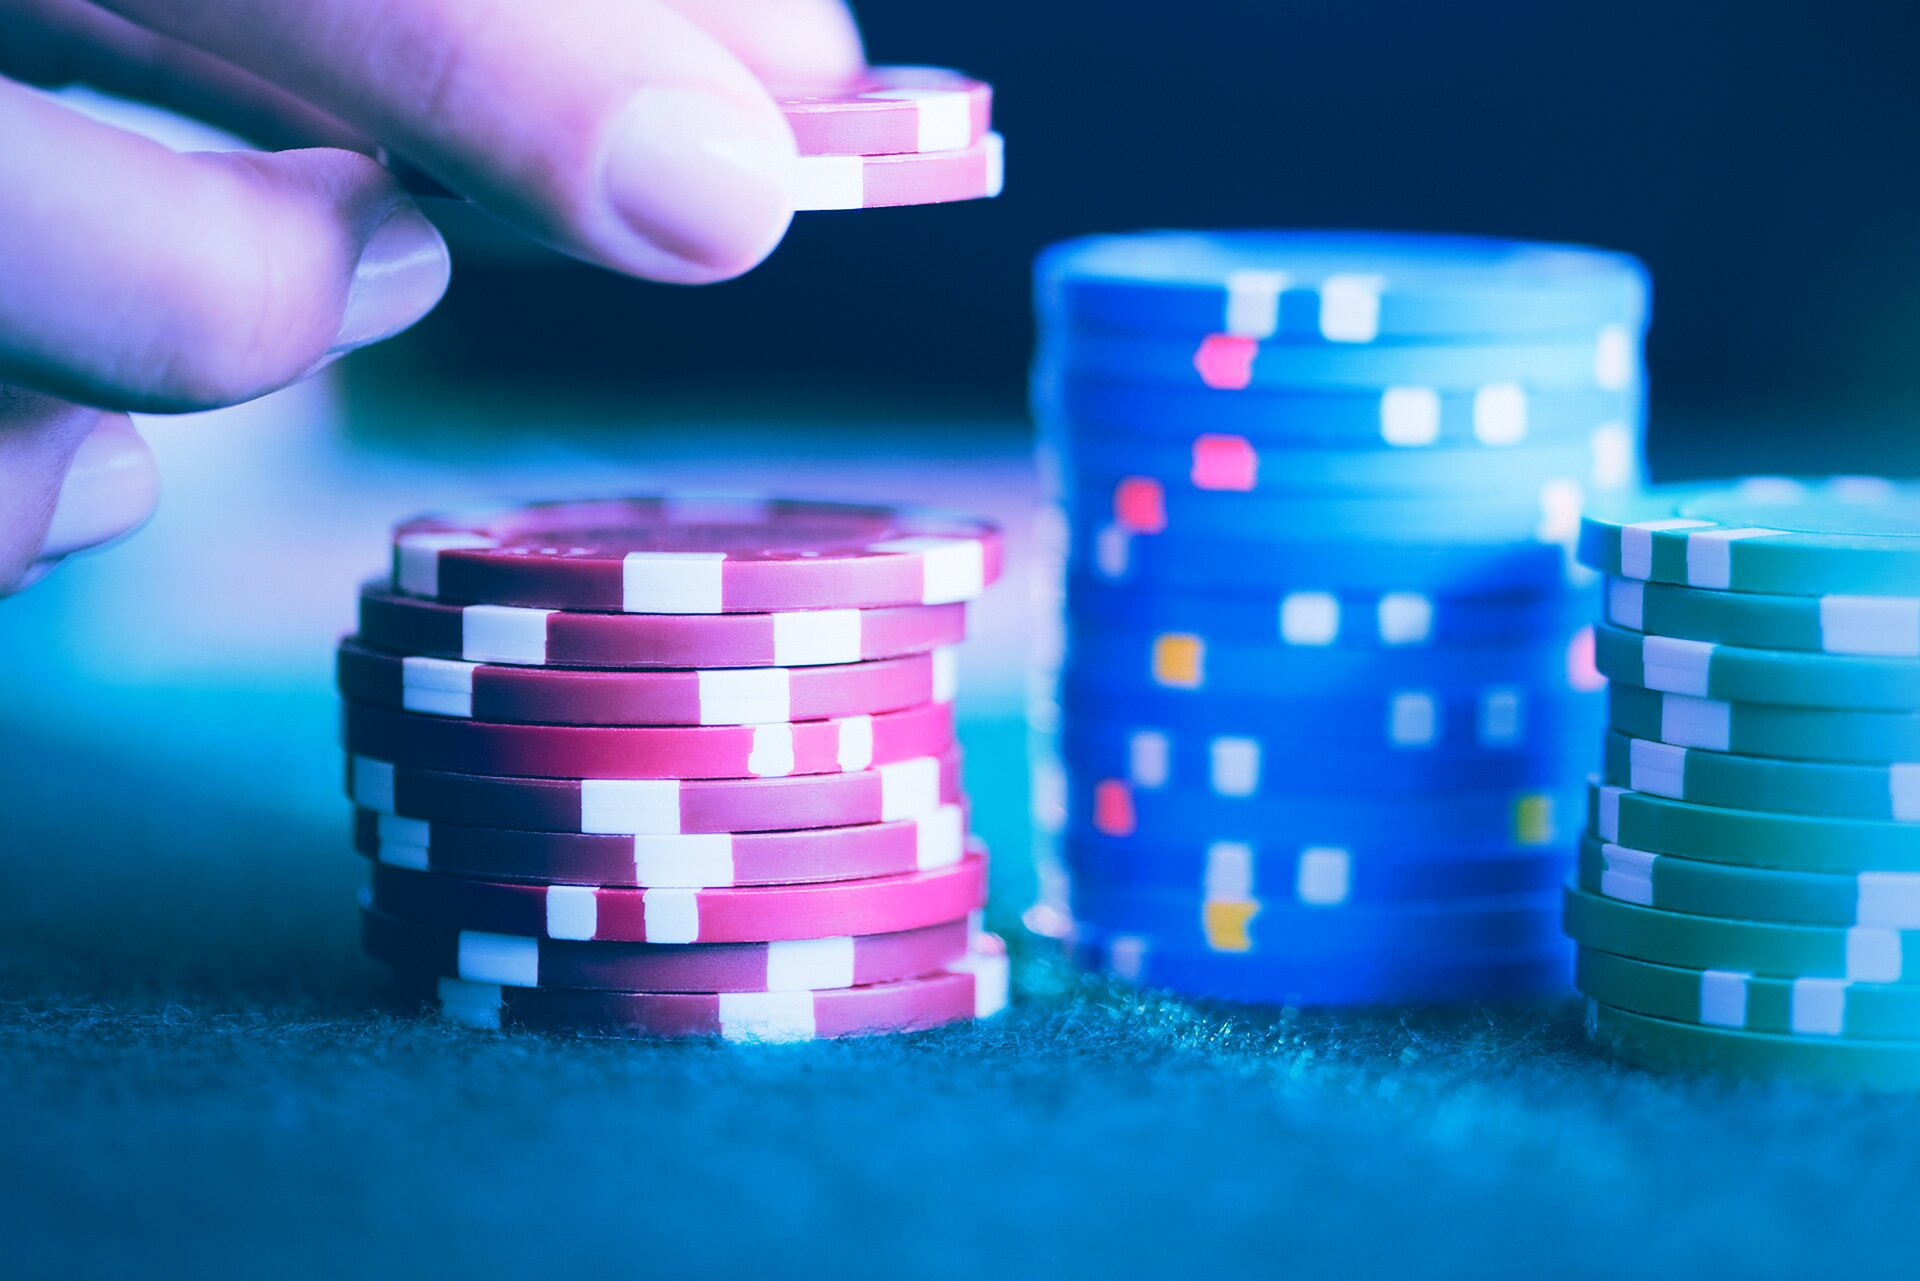 Gamble Online With Paypal